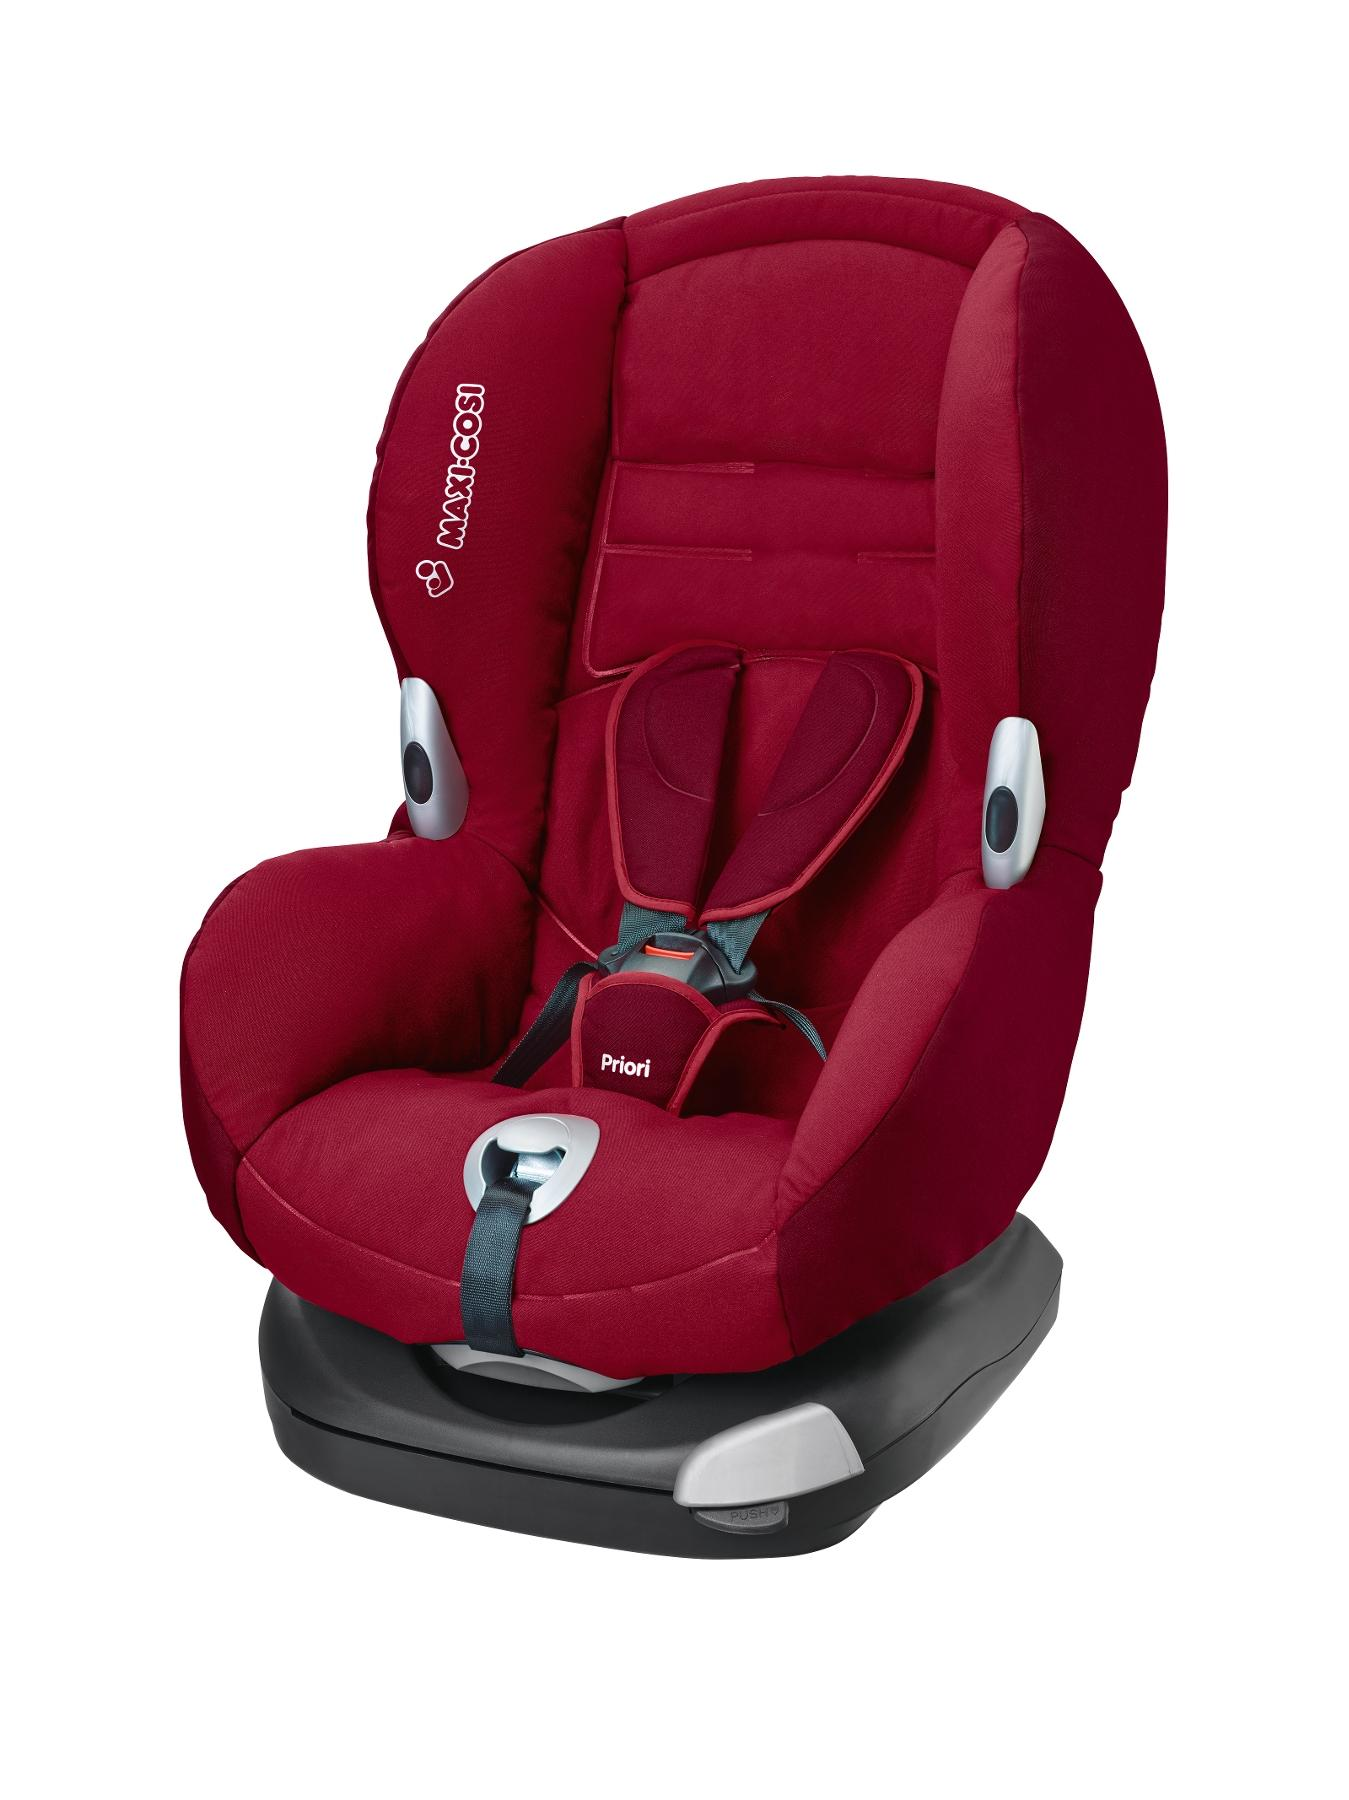 Maxi Cosi Priori Childrens Car Seats Shop Childrens Car Seats At Very Co Uk